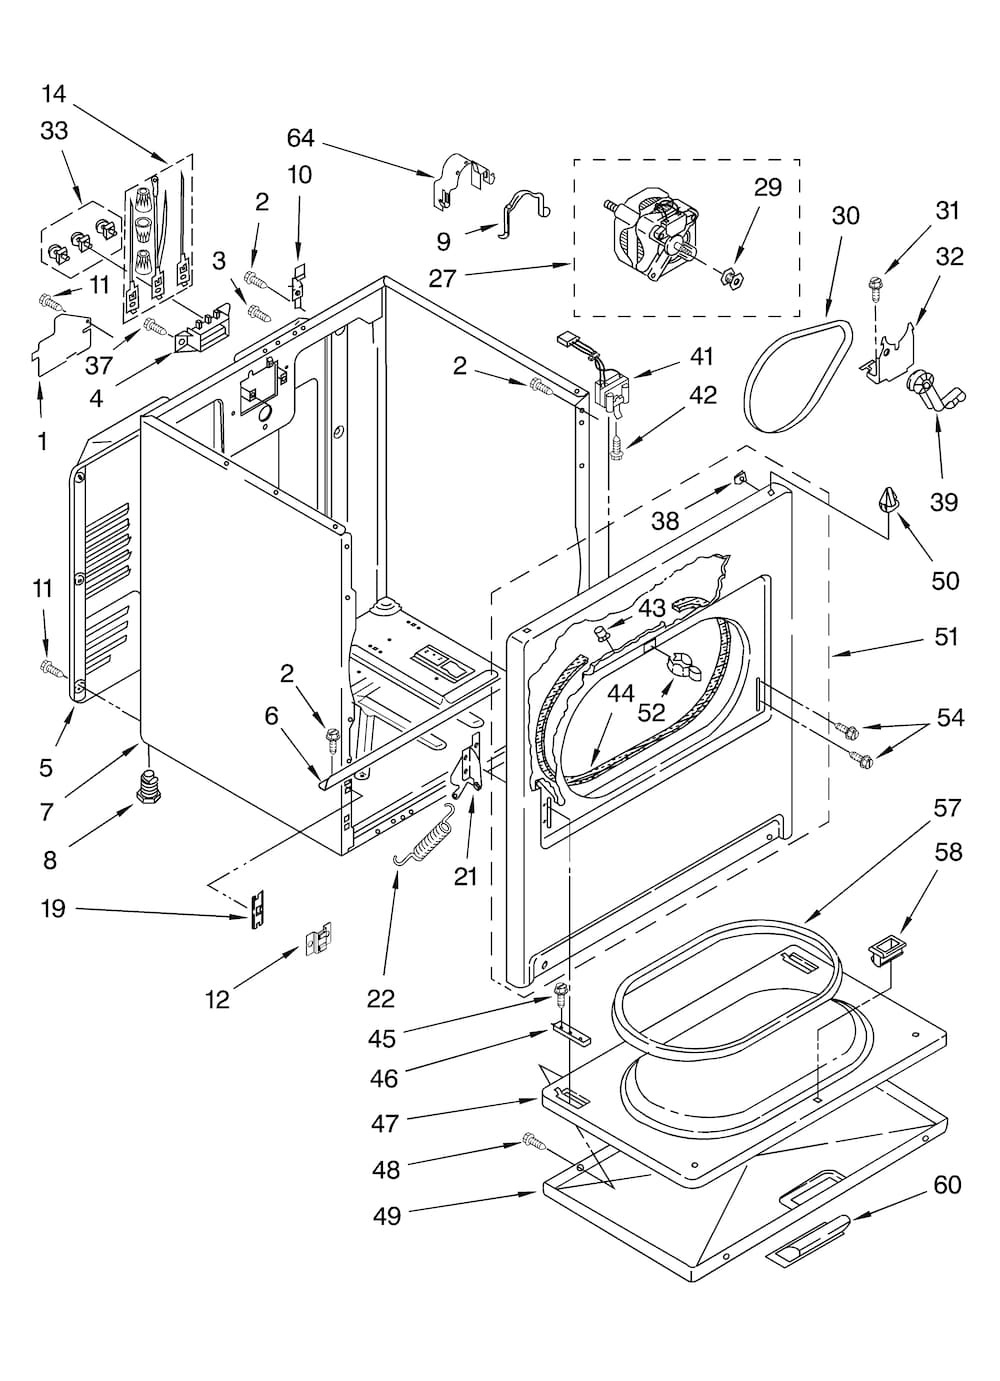 Sears Lady Kenmore Dryer Parts Model 110 On 70 Series Gas Diagram Residential Intended For 1000x1381